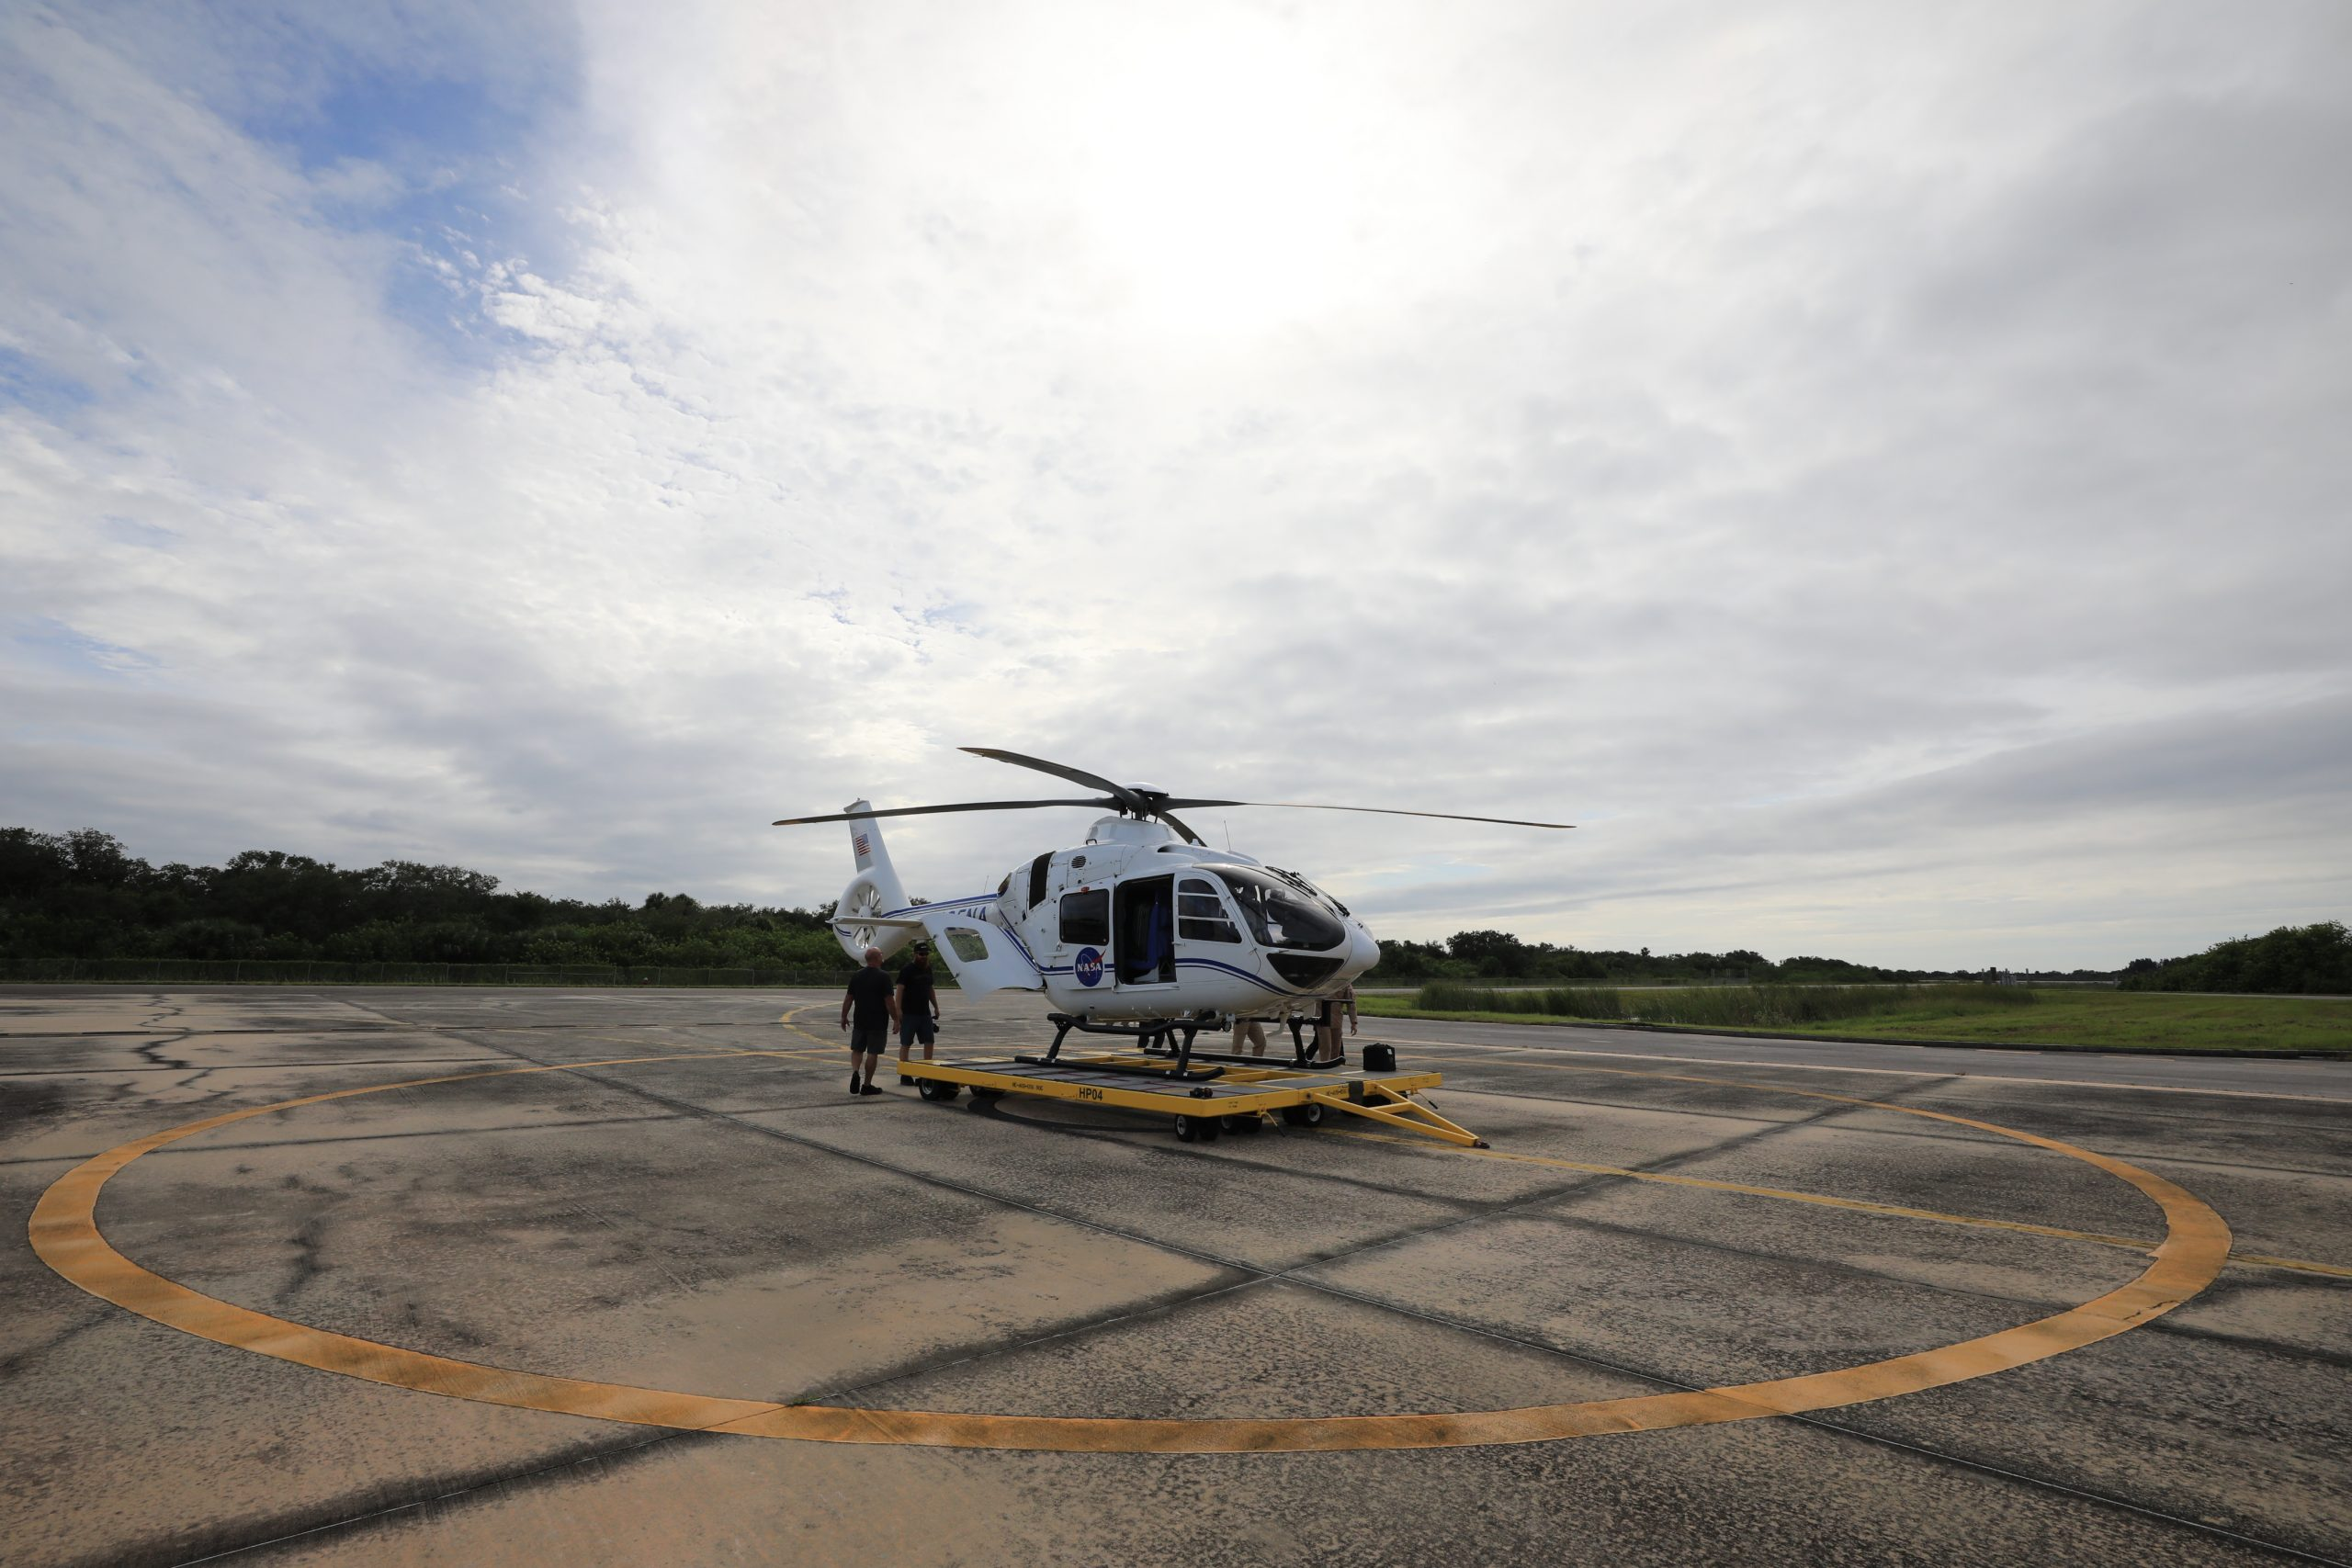 An Airbus H135 helicopter arrives at the Launch and Landing Facility runway at NASA's Kennedy Space Center in Florida on Sept. 30, 2020.